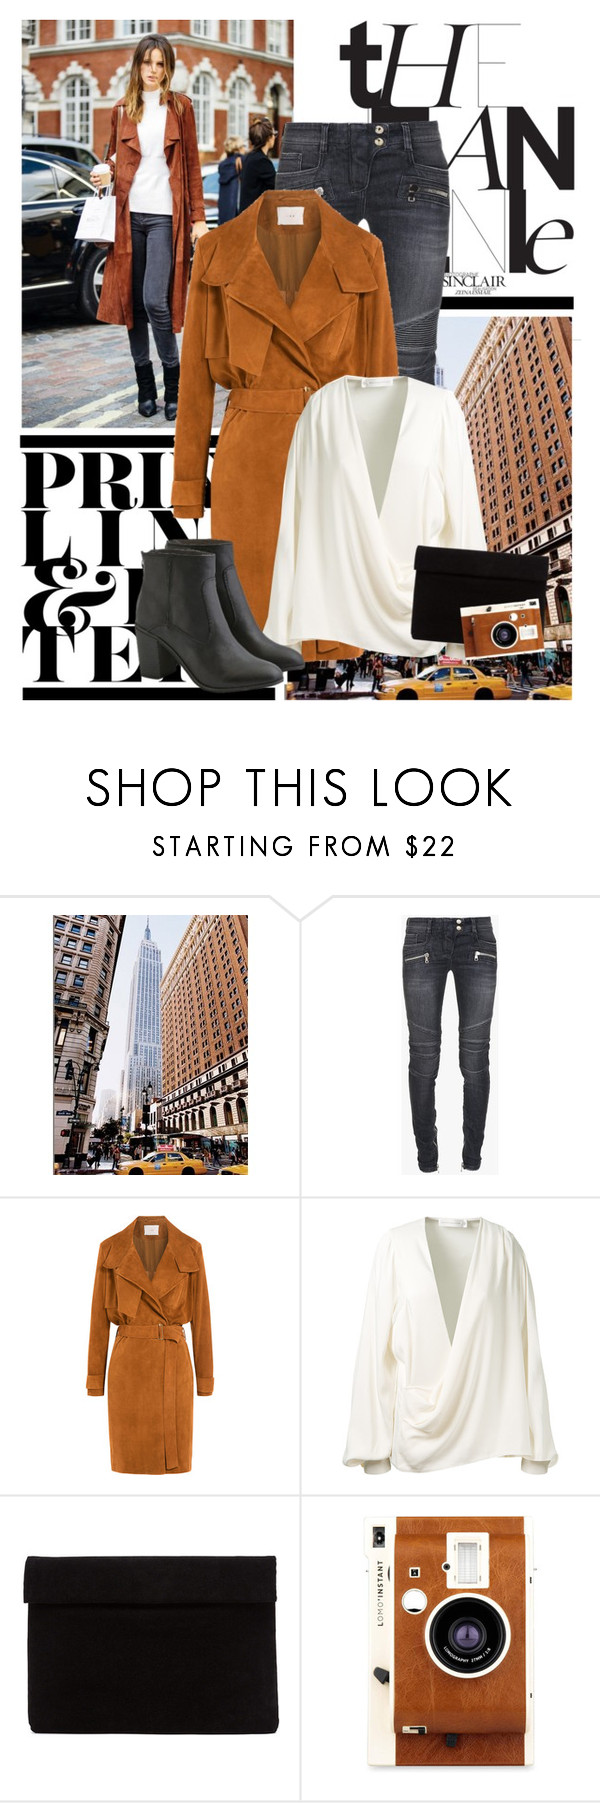 """""""Warm Winter Street Style"""" by jennaaflorence ❤ liked on Polyvore featuring Balmain, IRO, Victoria Beckham, LØMO and American Eagle Outfitters"""